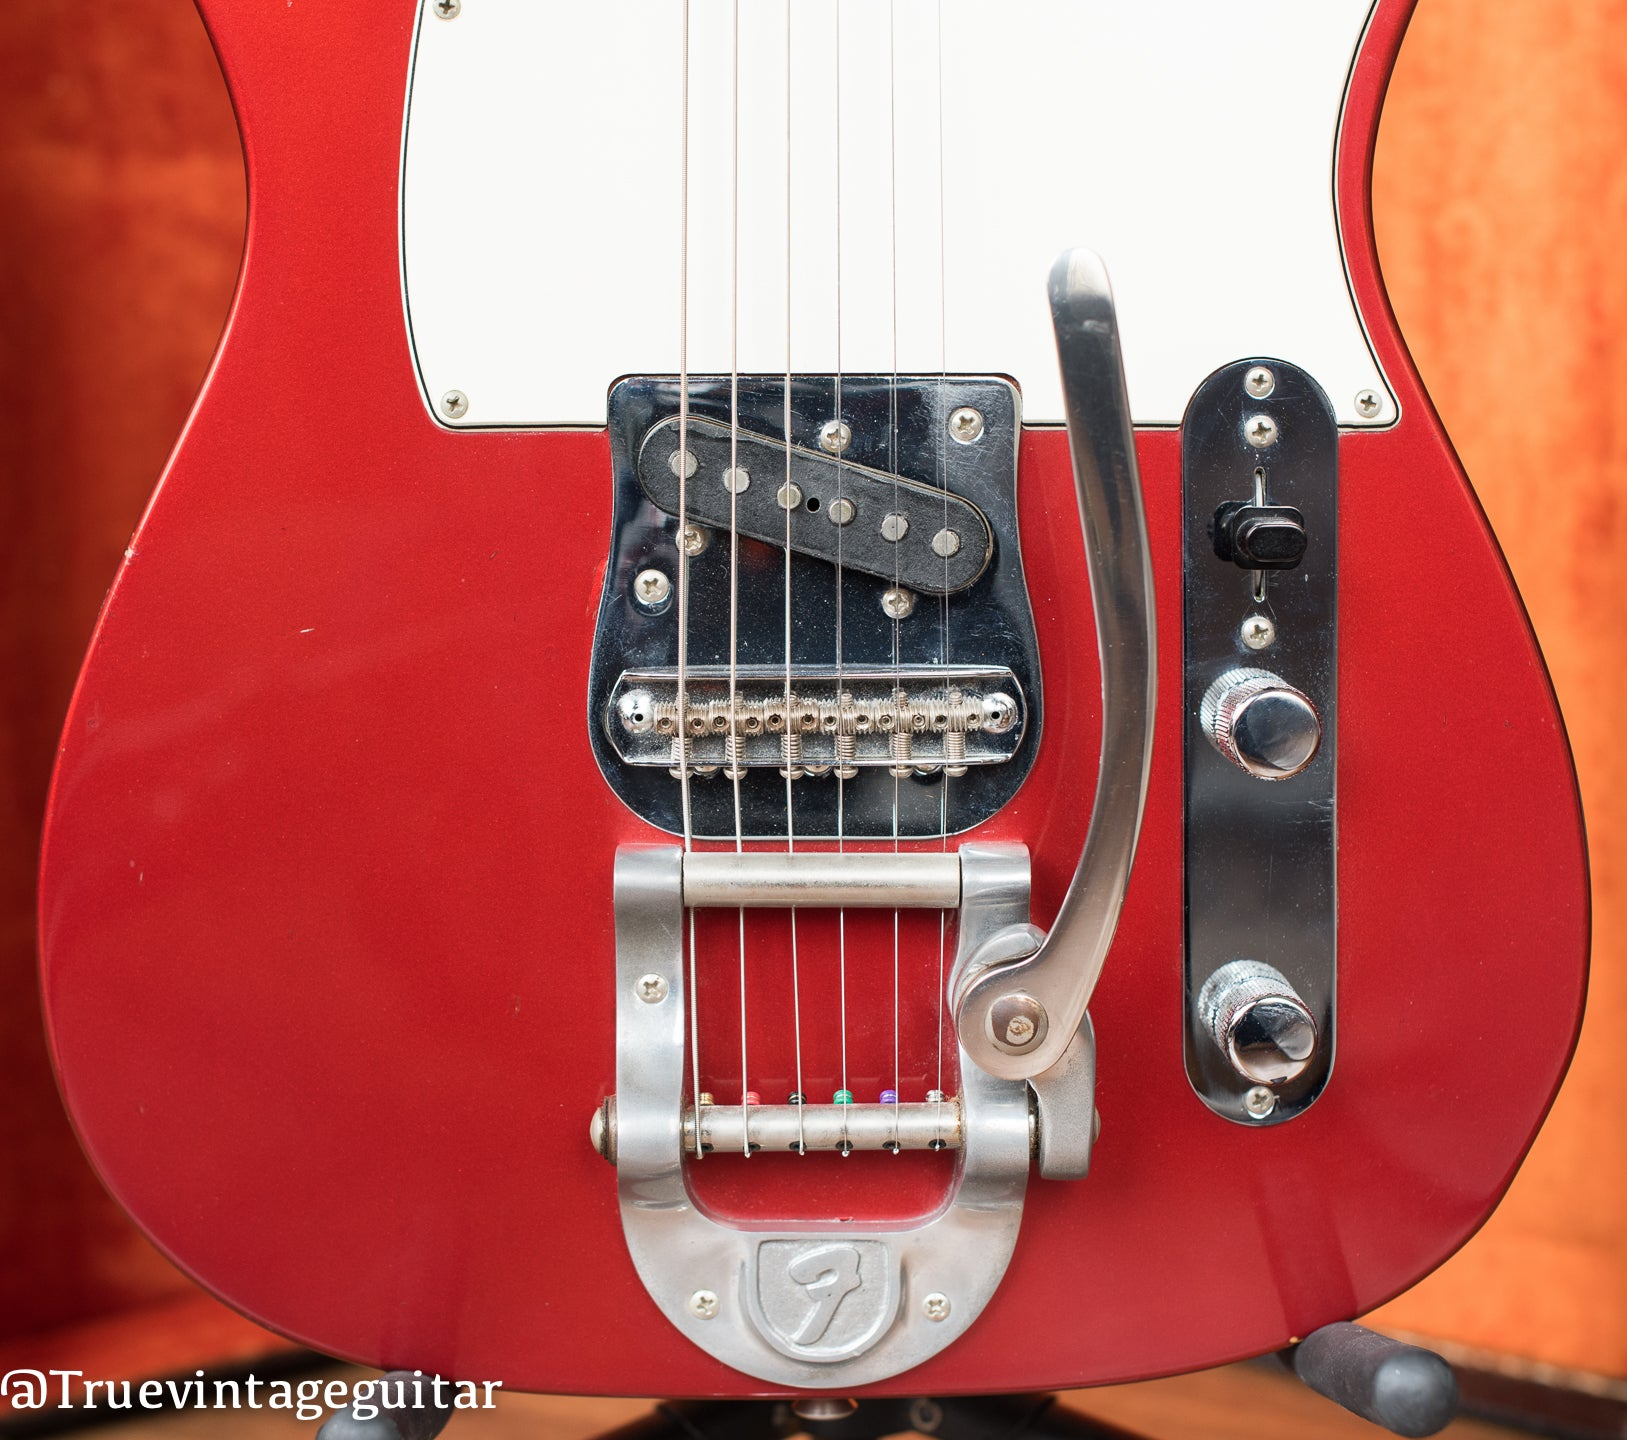 Factory installed Bigbsy tailpiece, vintage 1968 Fender Telecaster electric guitar, custom color Candy Apple Red Metallic finish